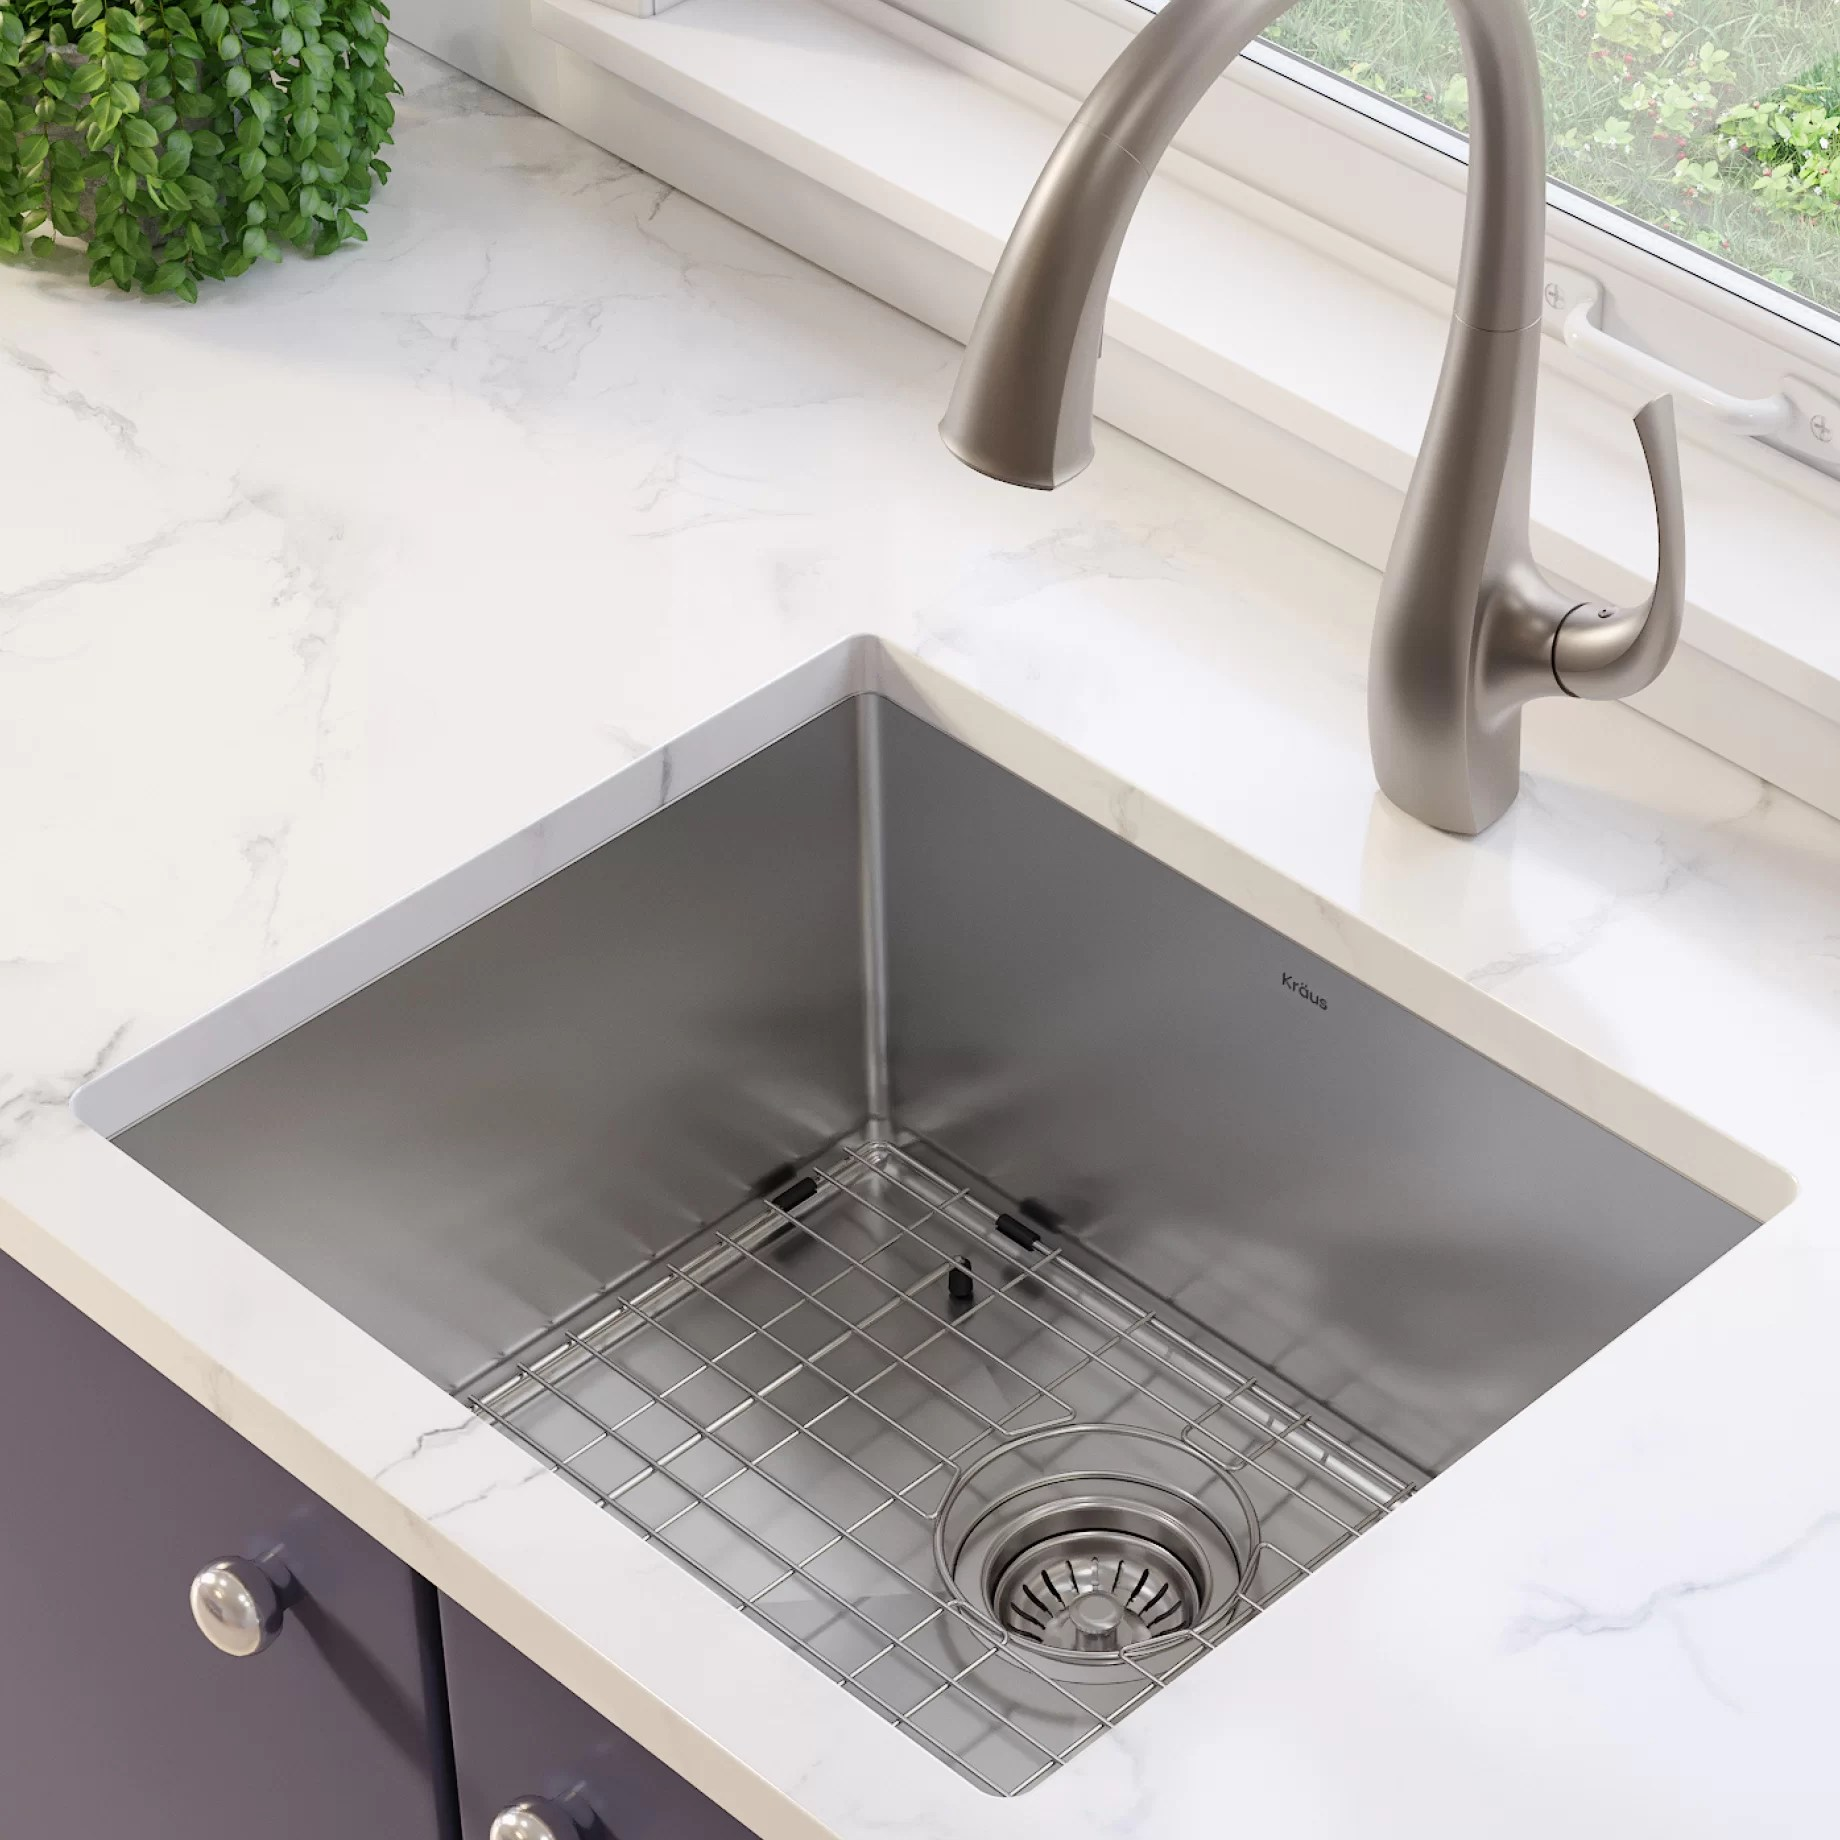 standart pro 16 gauge 21 x 18 undermount kitchen sink with bottom grid drain assembly and drain cap